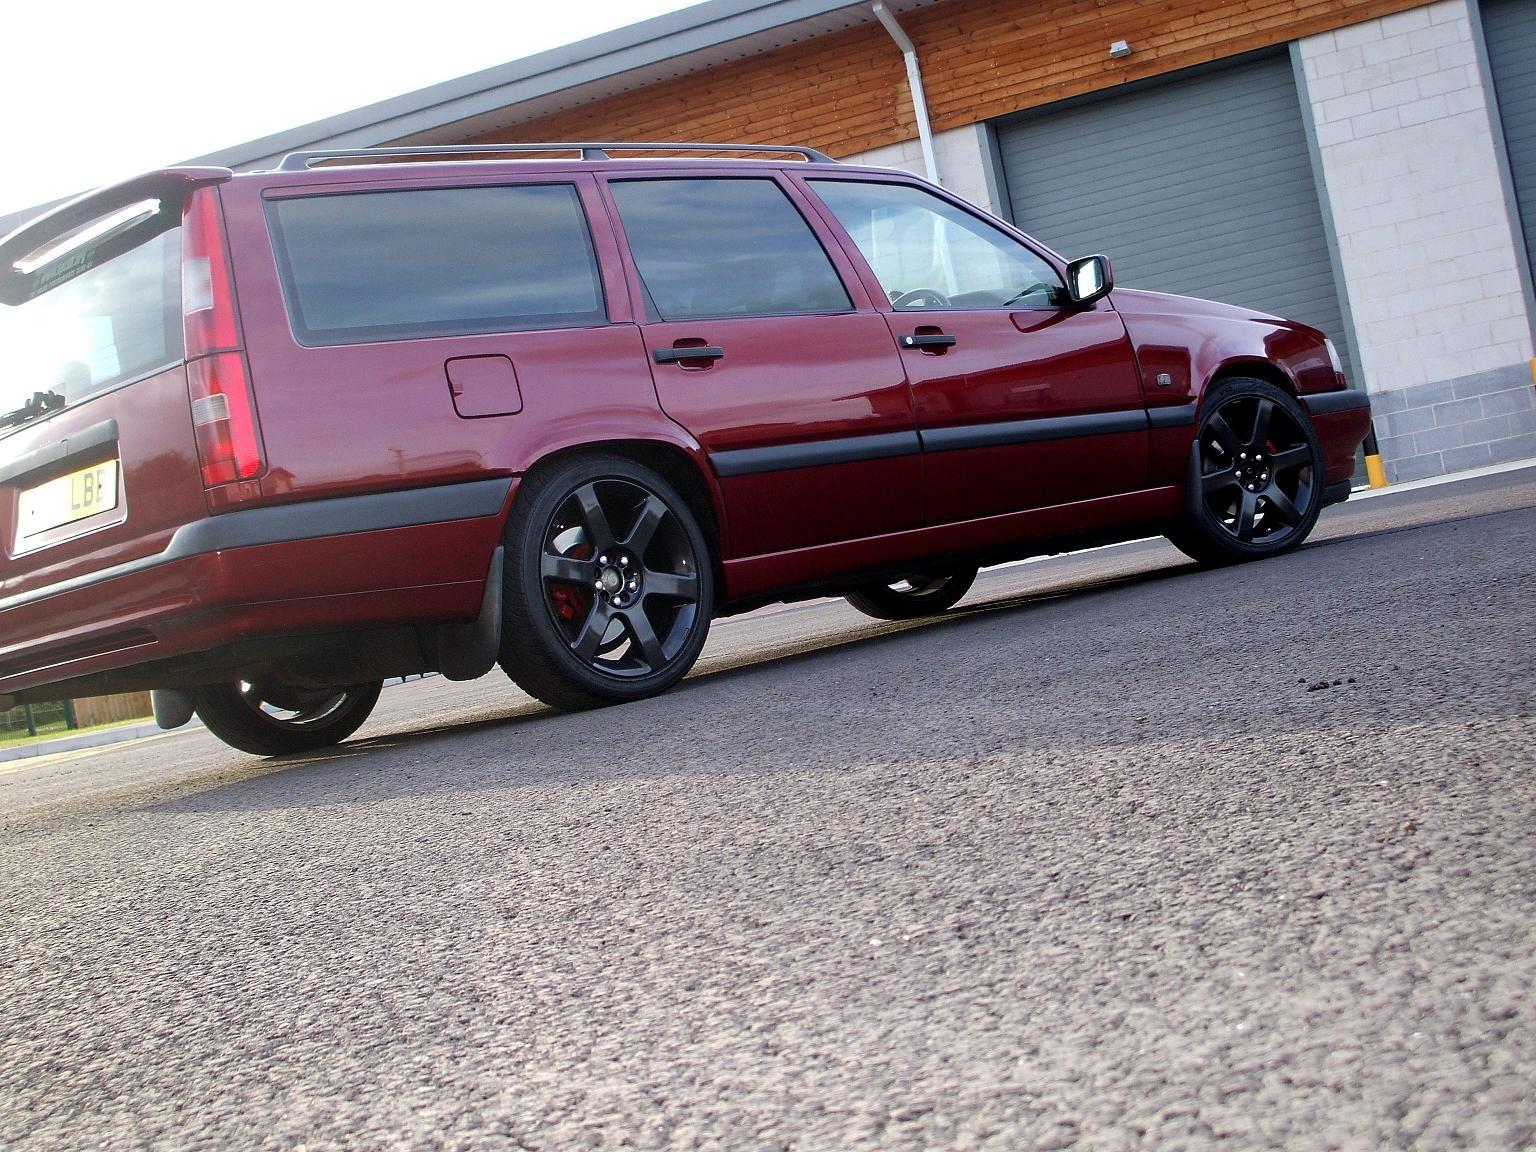 Volvo 850 T5 State: Photos, Reviews, News, Specs, Buy car